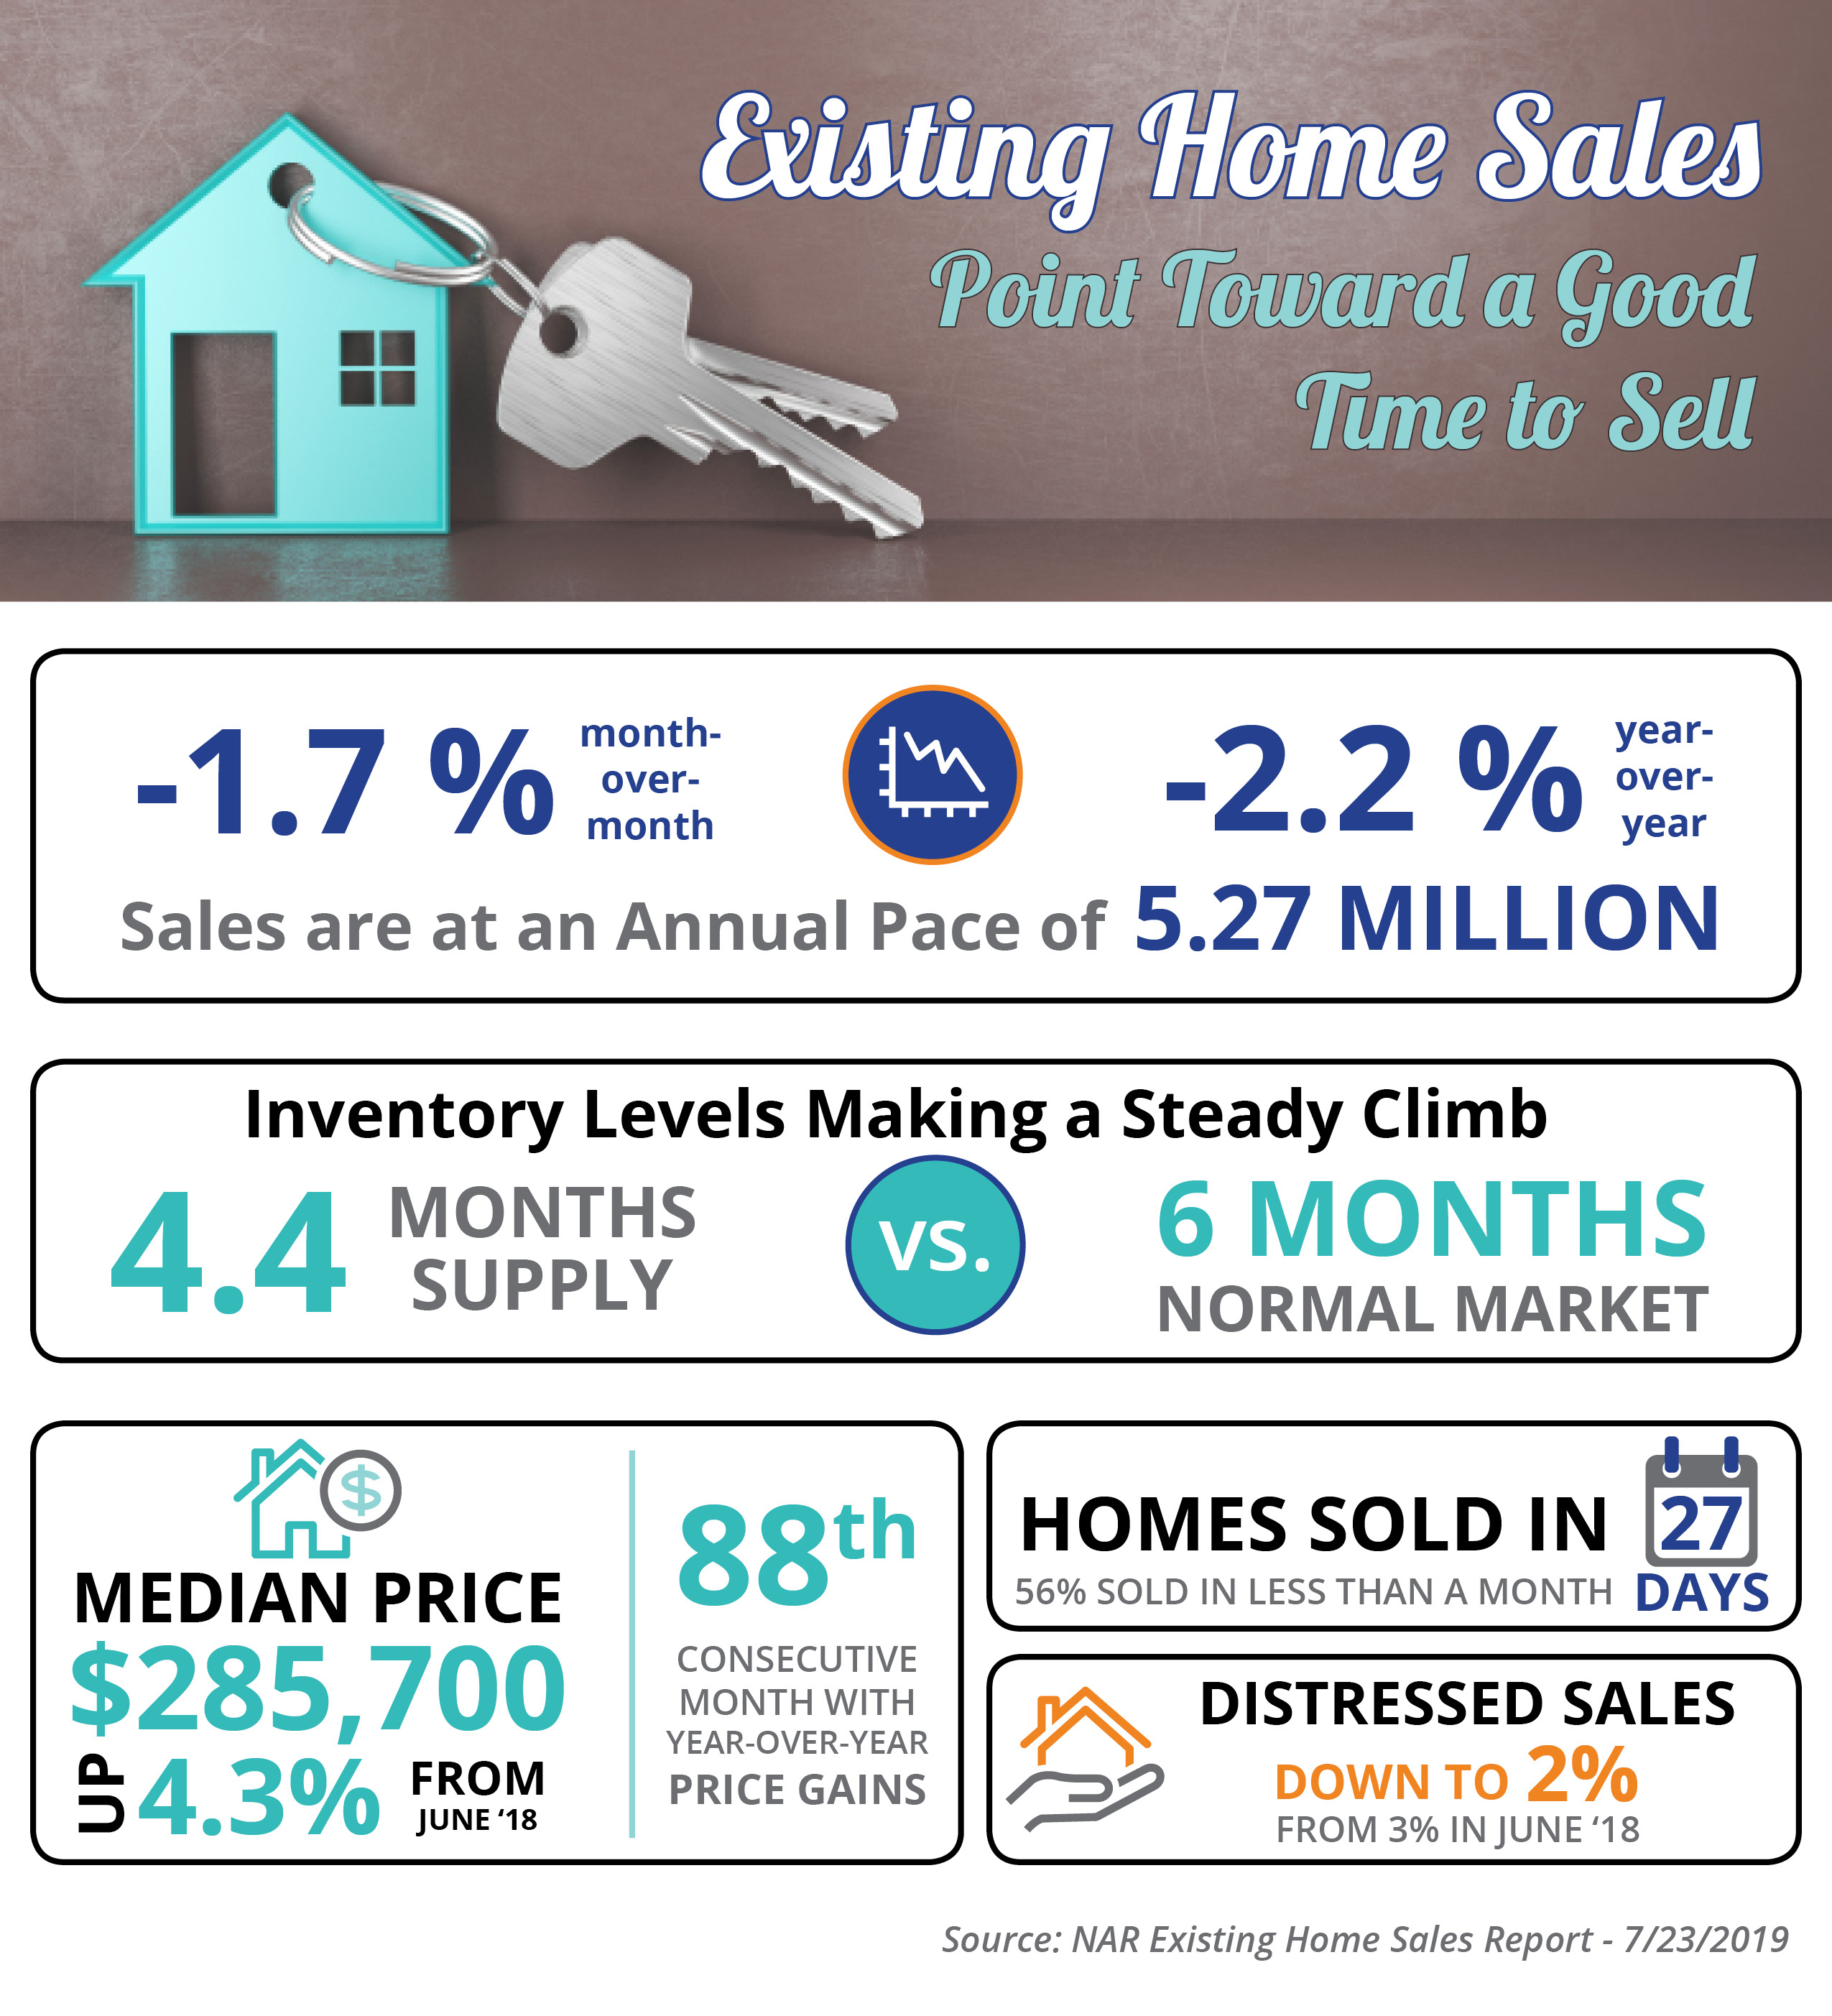 Existing Home Sales Point Toward a Good Time to Sell [INFOGRAPHIC]   Bridge Builders